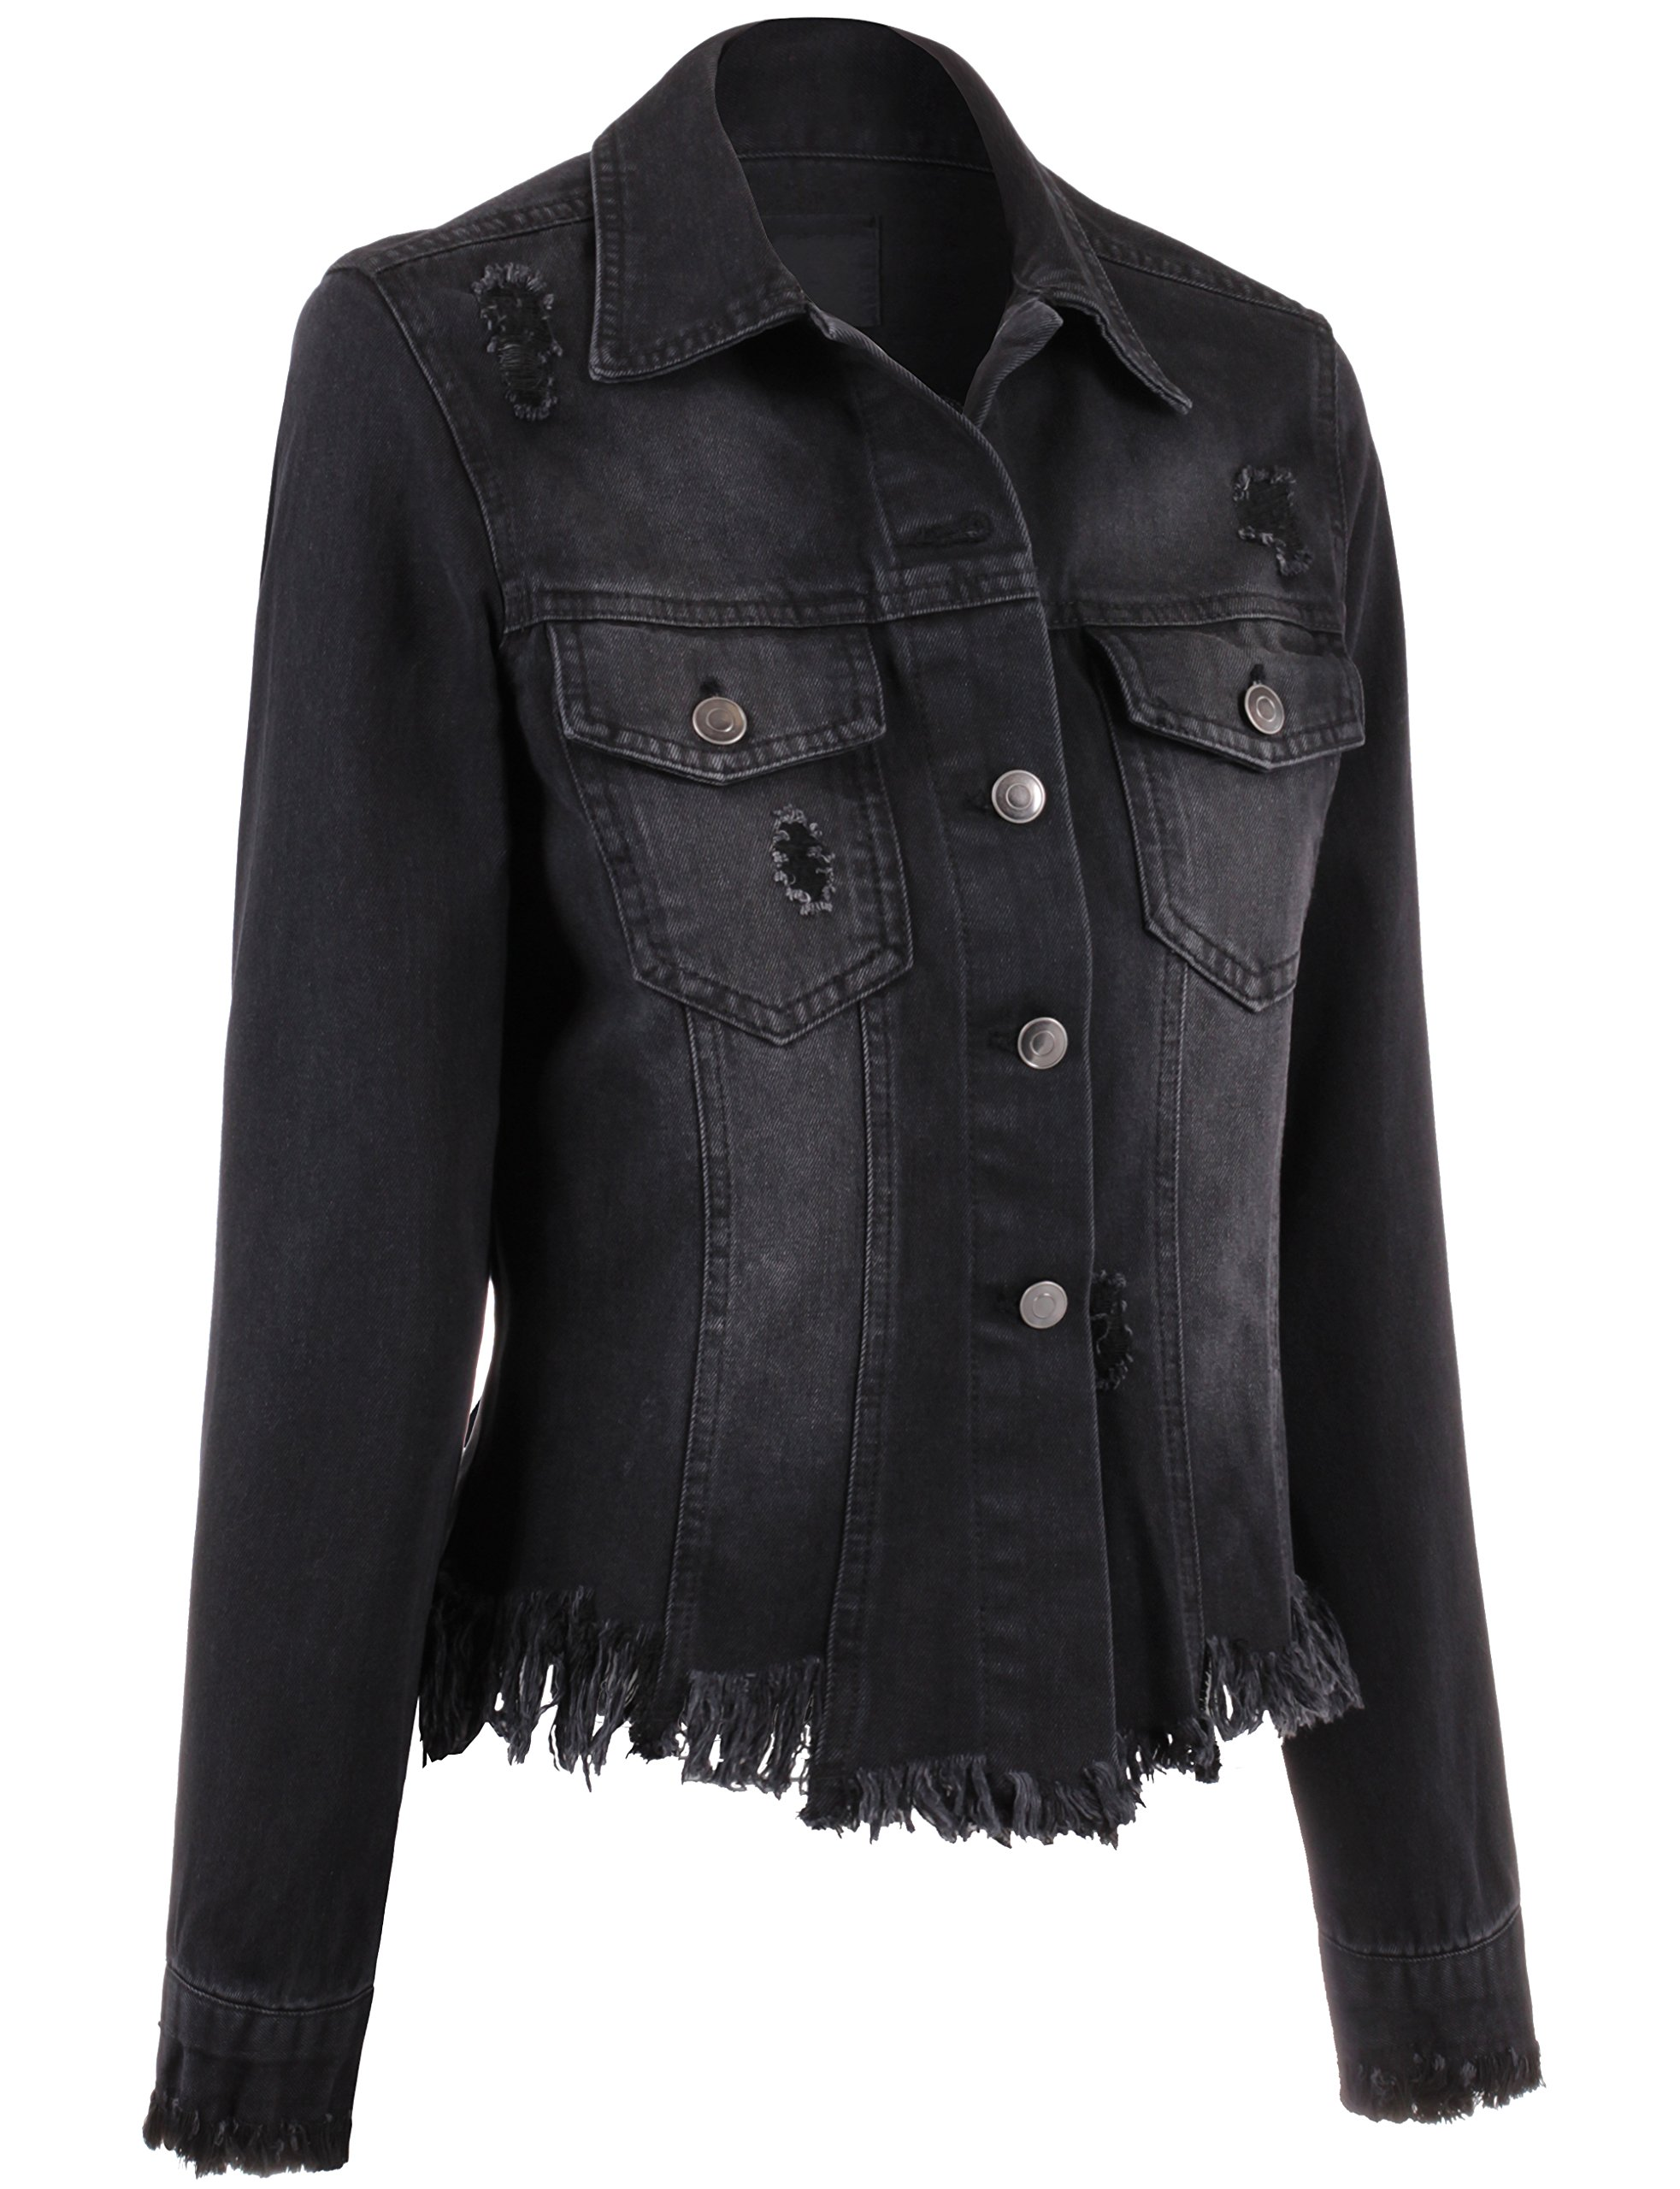 BEKTOME Womens Distressed Vintage Denim Jacket With Embroidery On Back-L-Black